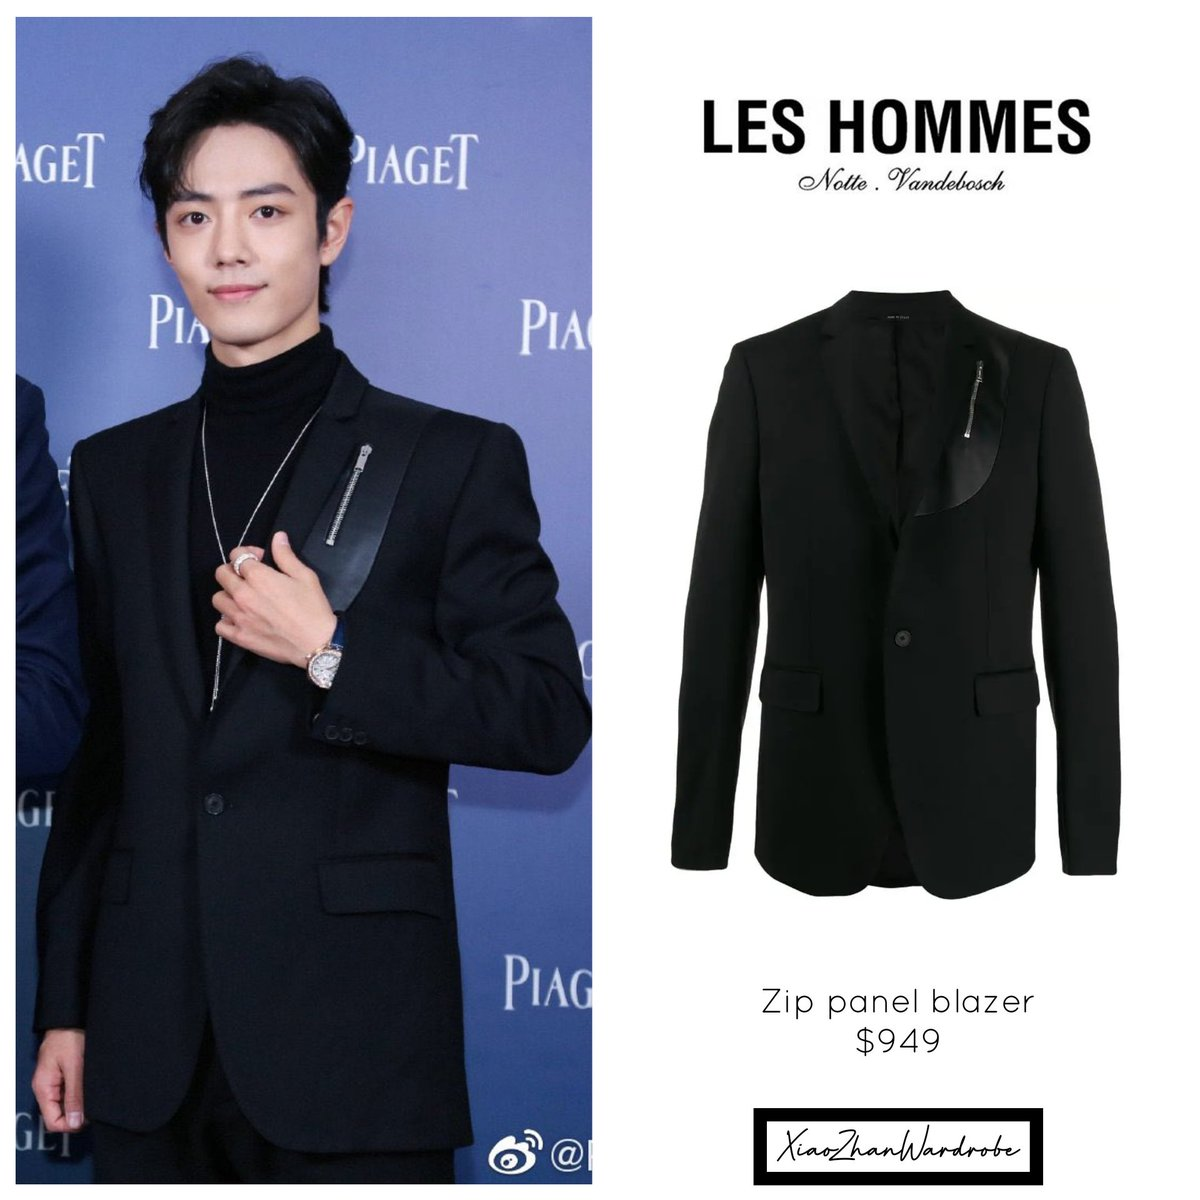 Xiao Zhan is wearing a blazer with leather effect panel and zip detail from #LesHommes #XiaoZhan<br>http://pic.twitter.com/r99R8XFtI1